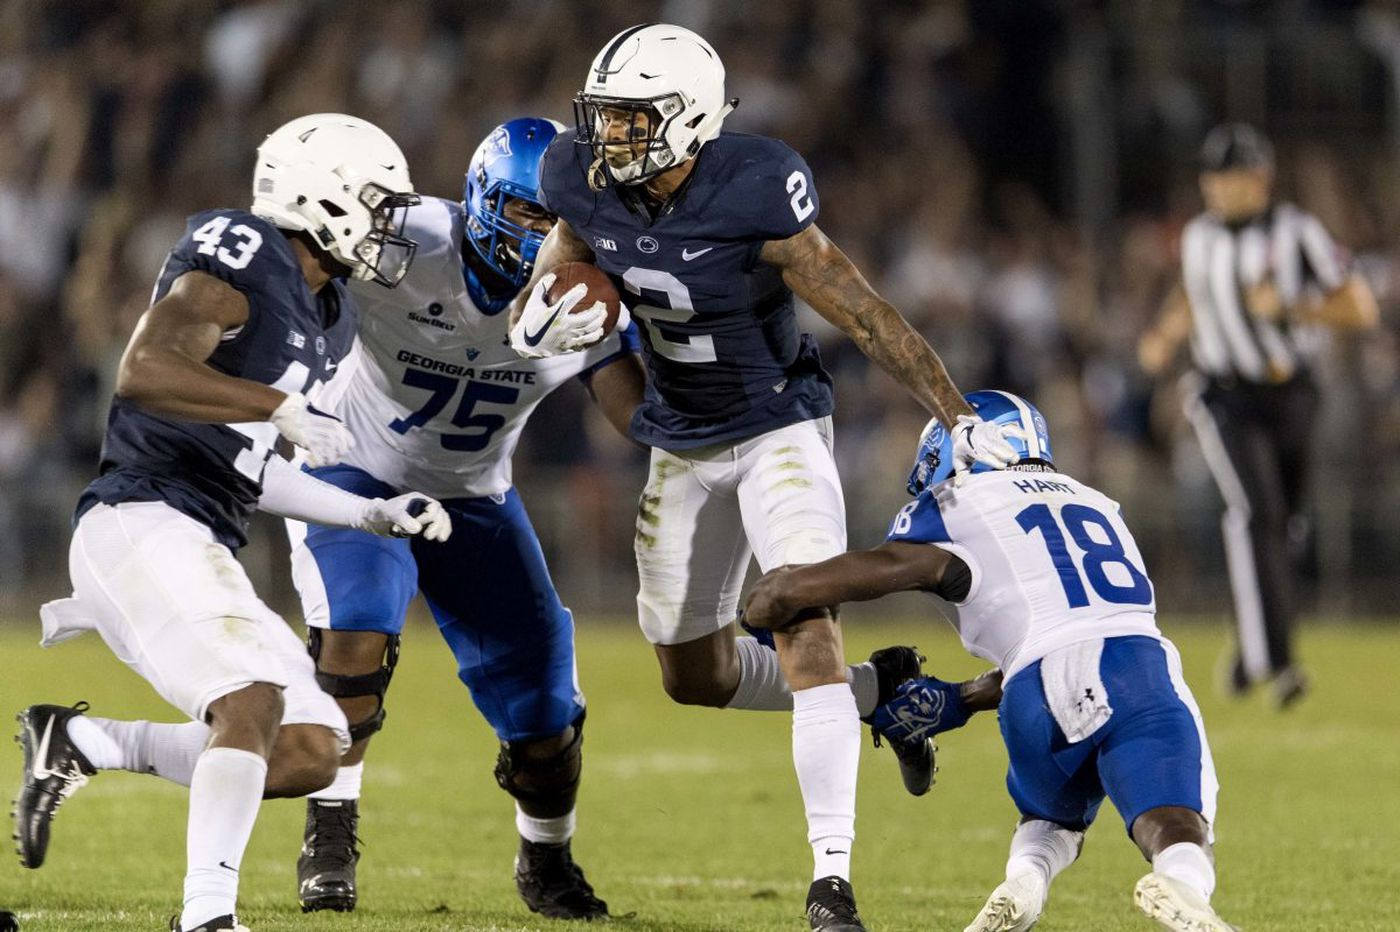 Free safety Marcus Allen's enthusiasm, performance spark Penn State